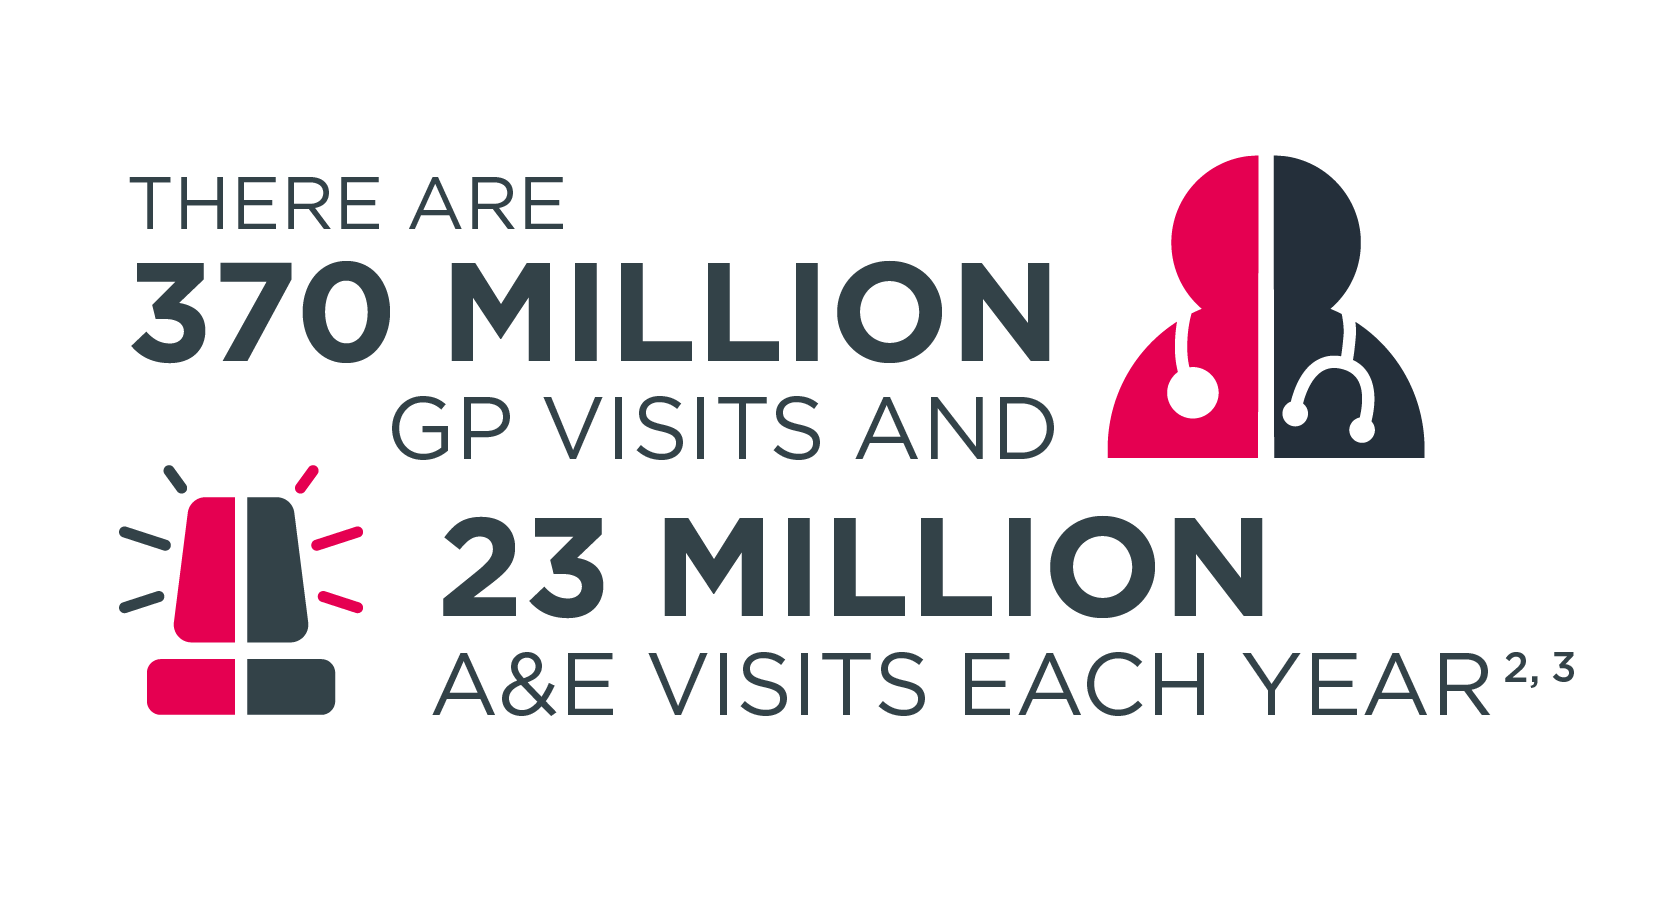 There are 370 million GP visits and 23 million A&E visits each year